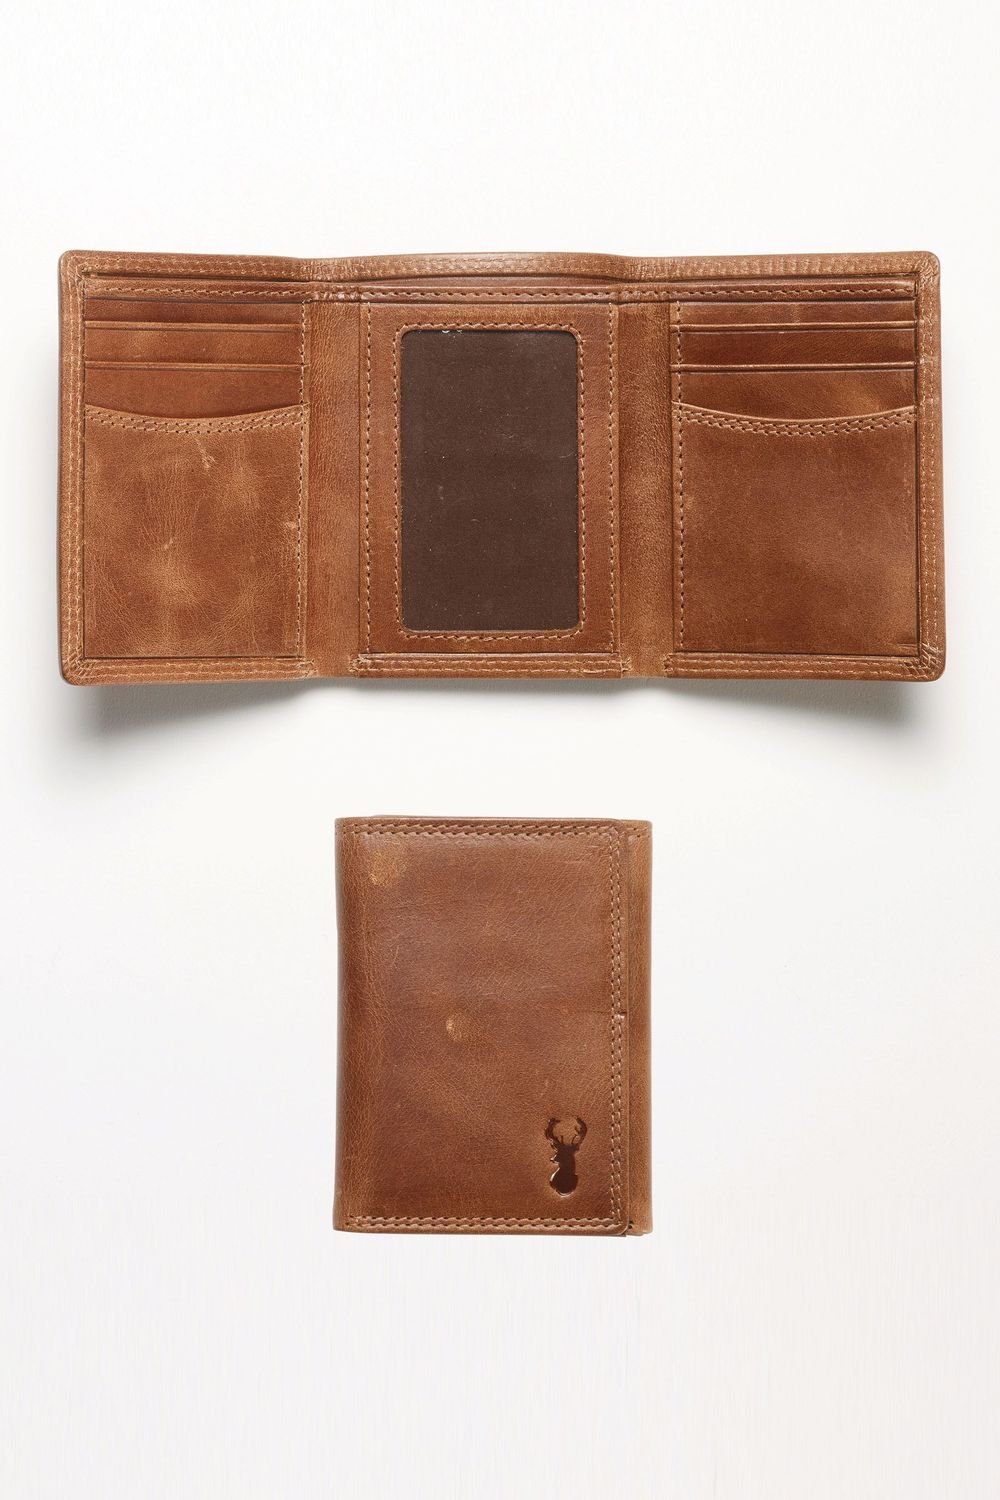 Next Signature Italian Leather Extra Capacity Trifold Wallet - Black   45.00. Quick view b5c6a6998d51